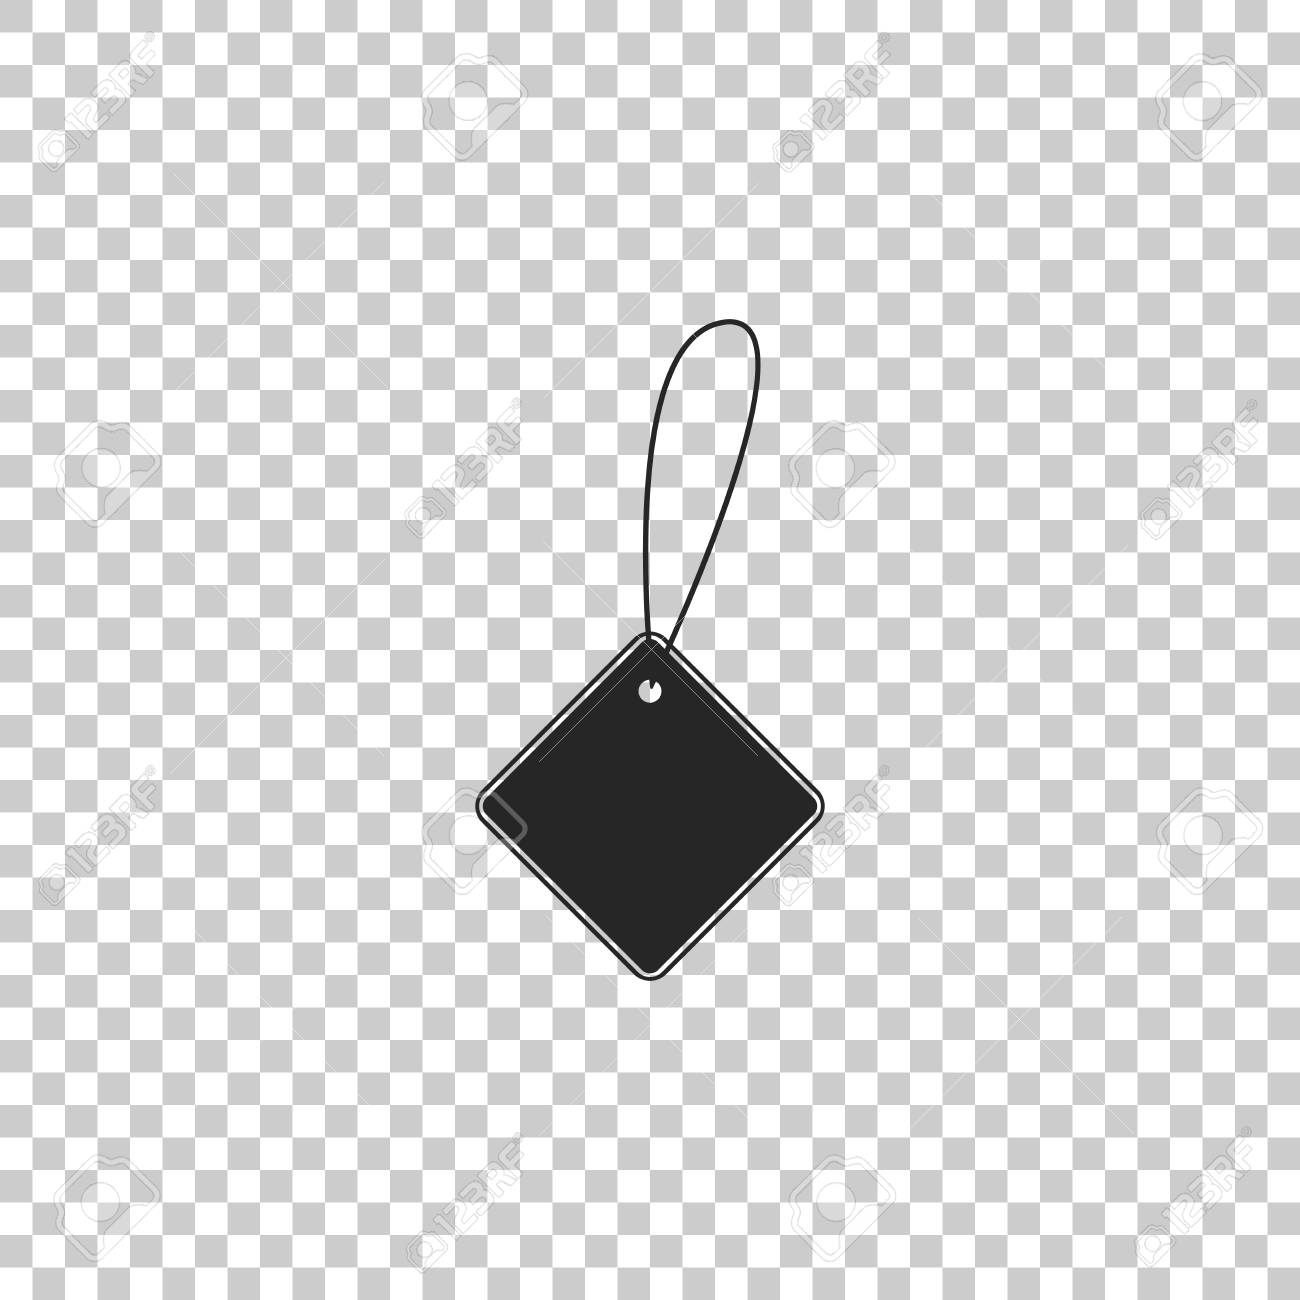 Blank Label Template Price Tag Icon Isolated On Transparent Background